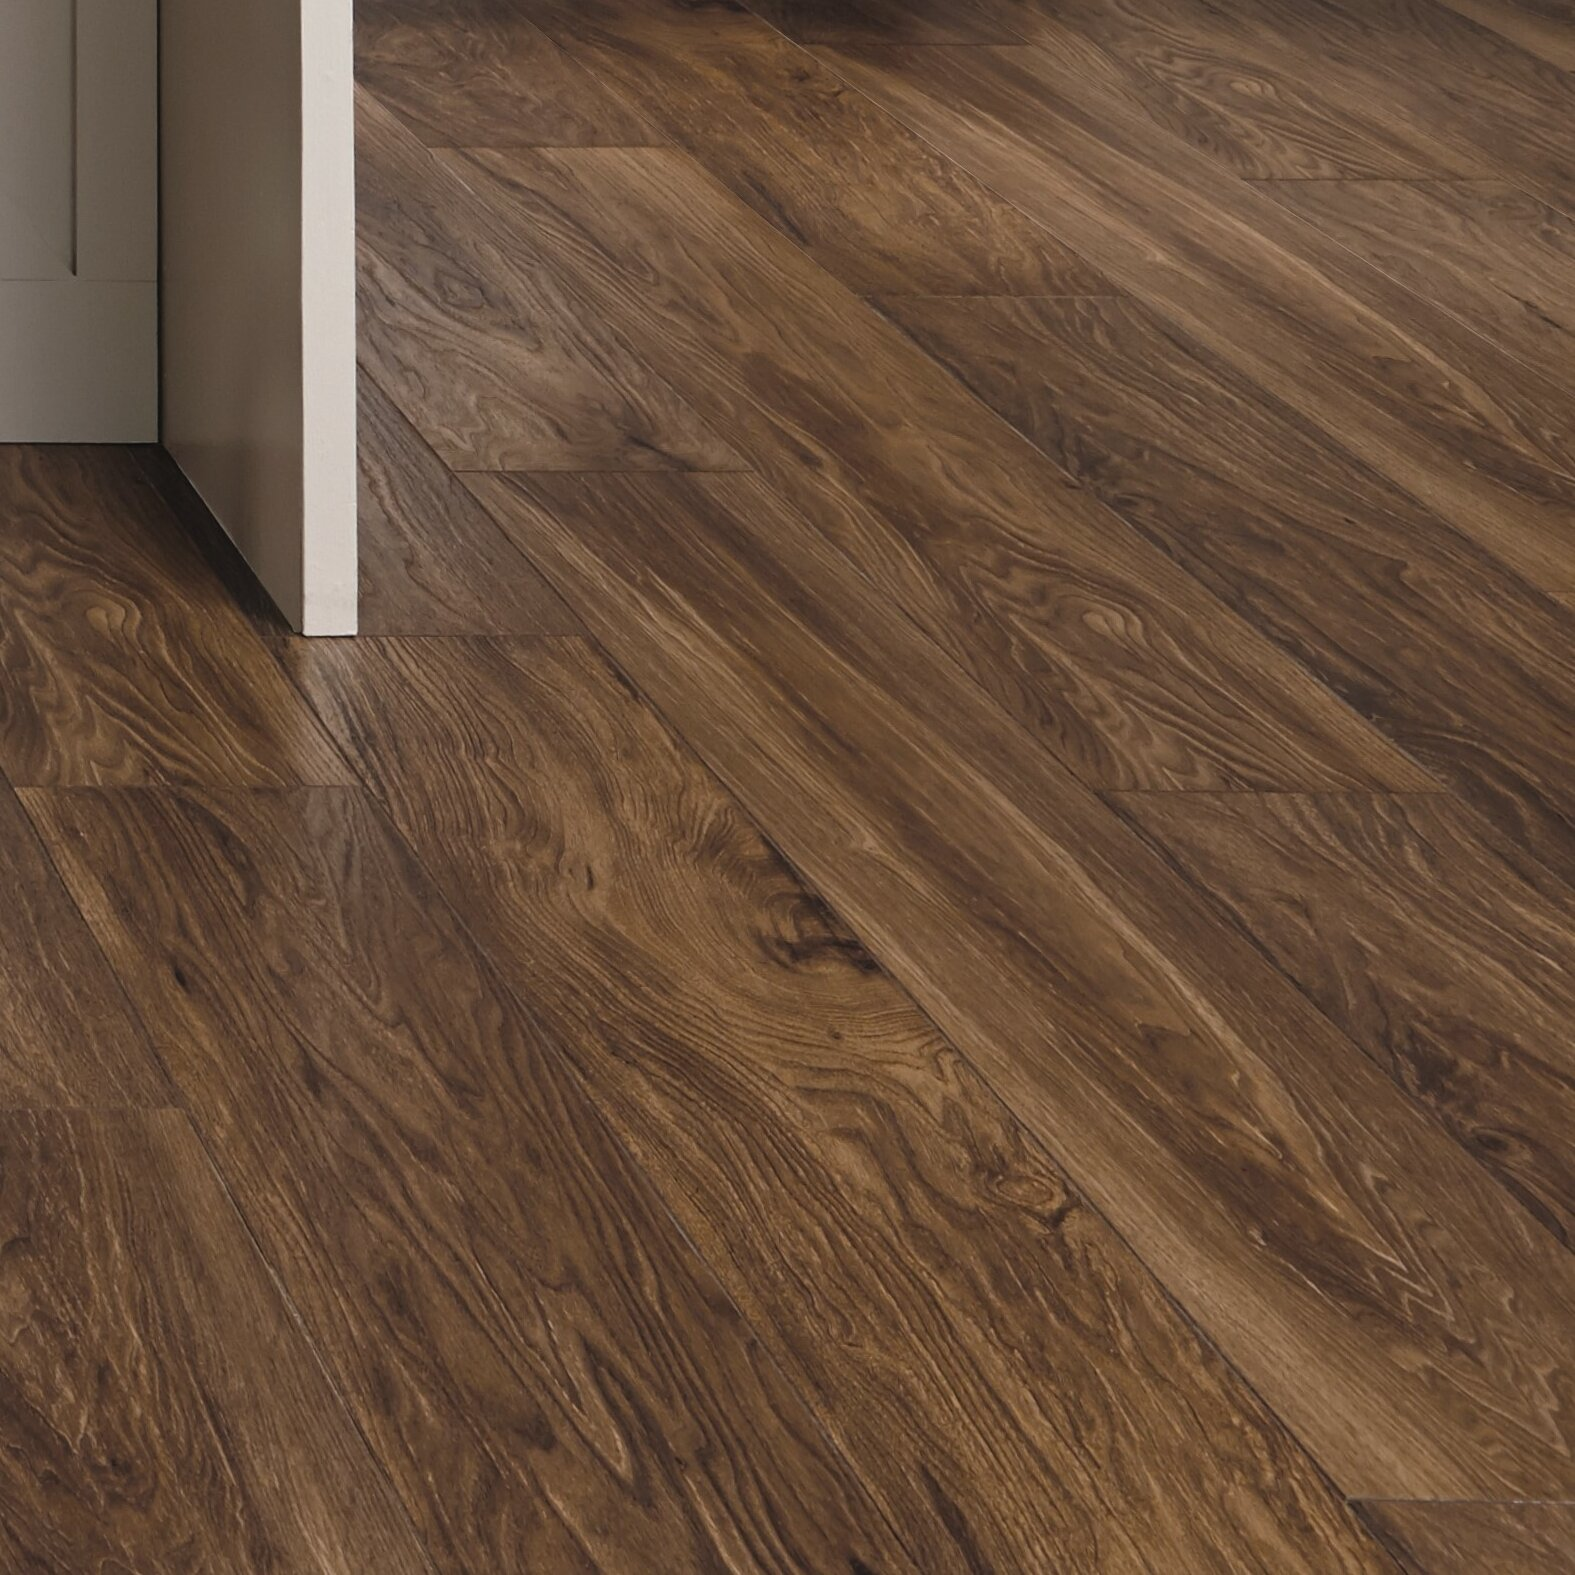 Wide Plank Laminate Flooring image of home depot laminate flooring image of engineered wide plank flooring Restoration Wide Plank 8 X 51 X 12mm Laminate